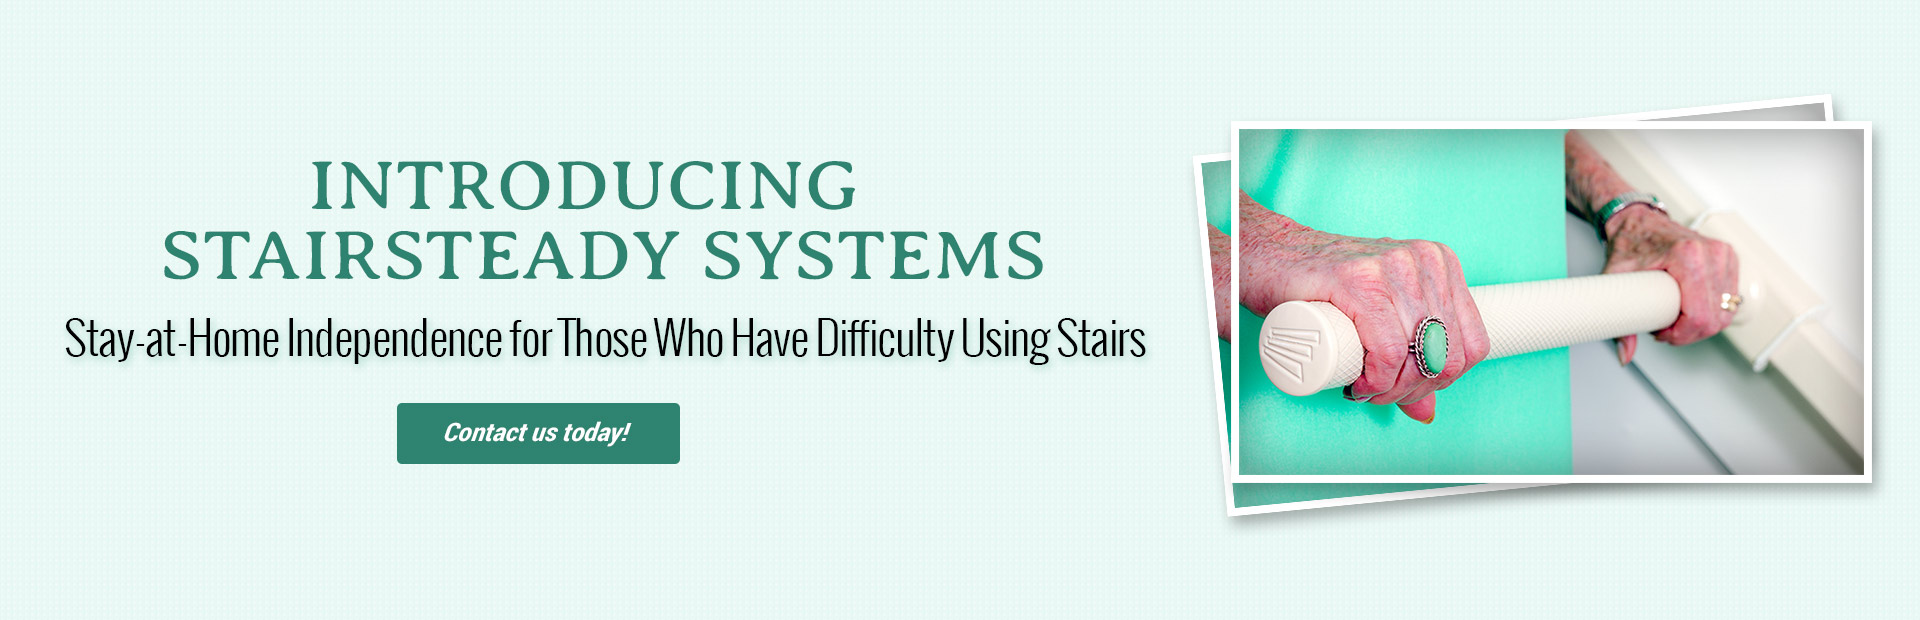 Introducing StairSteady Systems: Stay-at-Home Independence for Those Who Have Difficulty Using Stair